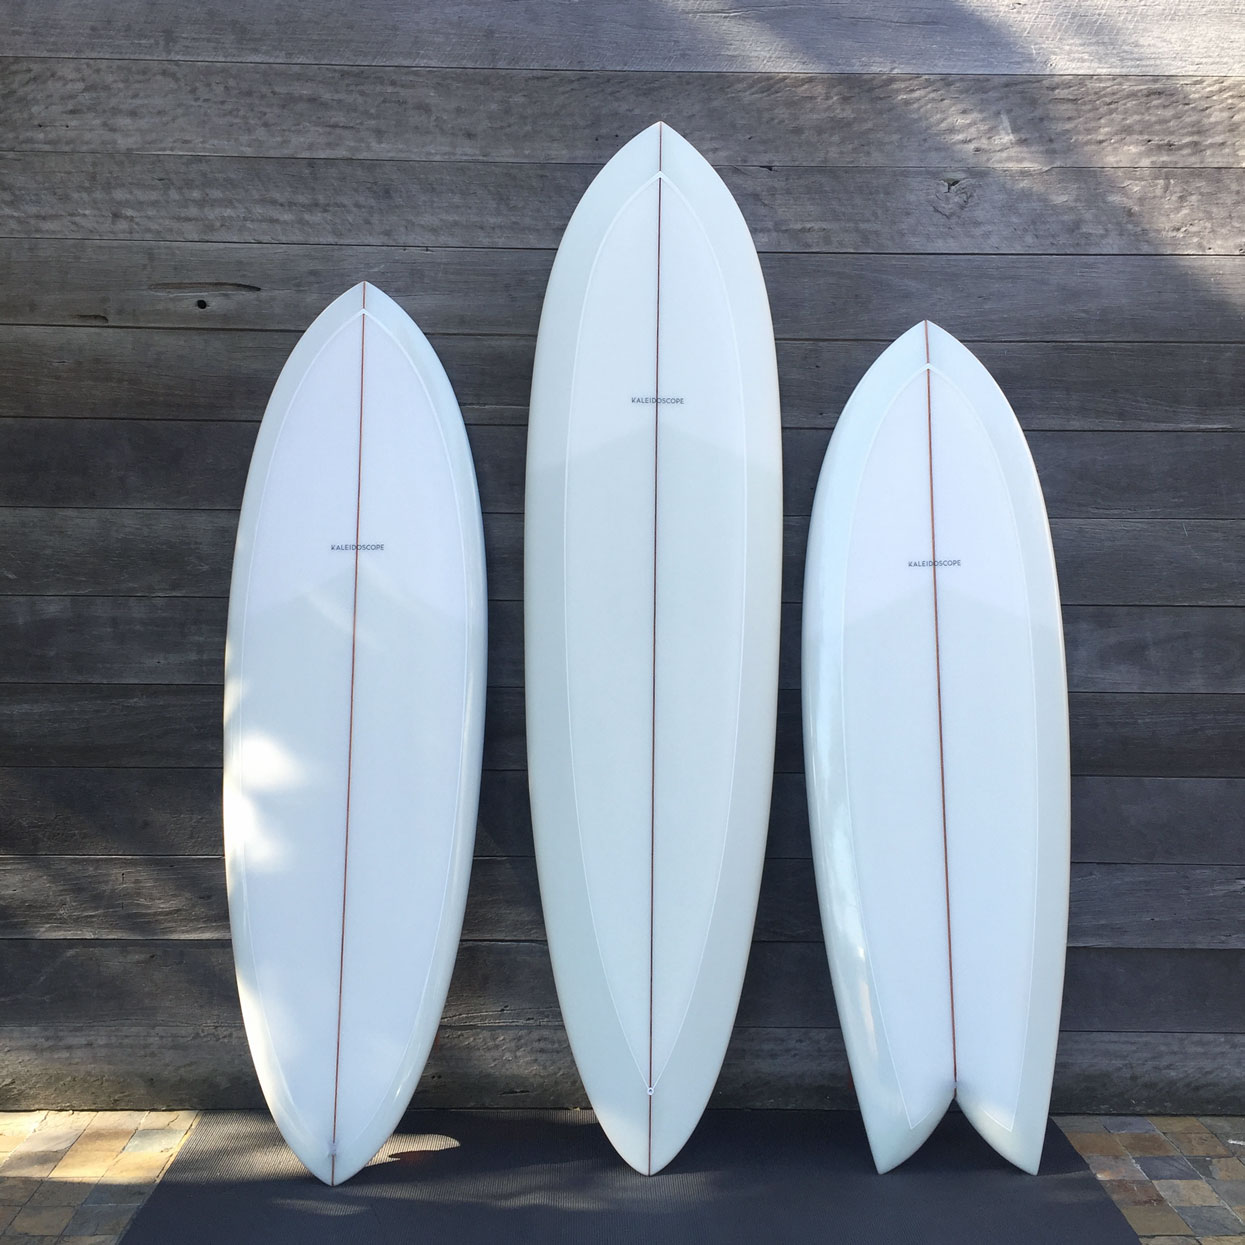 Kaleidoscope Surfboards three boards - Strategy, Art Direction, Branding, Graphic & Digital Design Advertising Graphic Design Pacifica agency Byron Bay